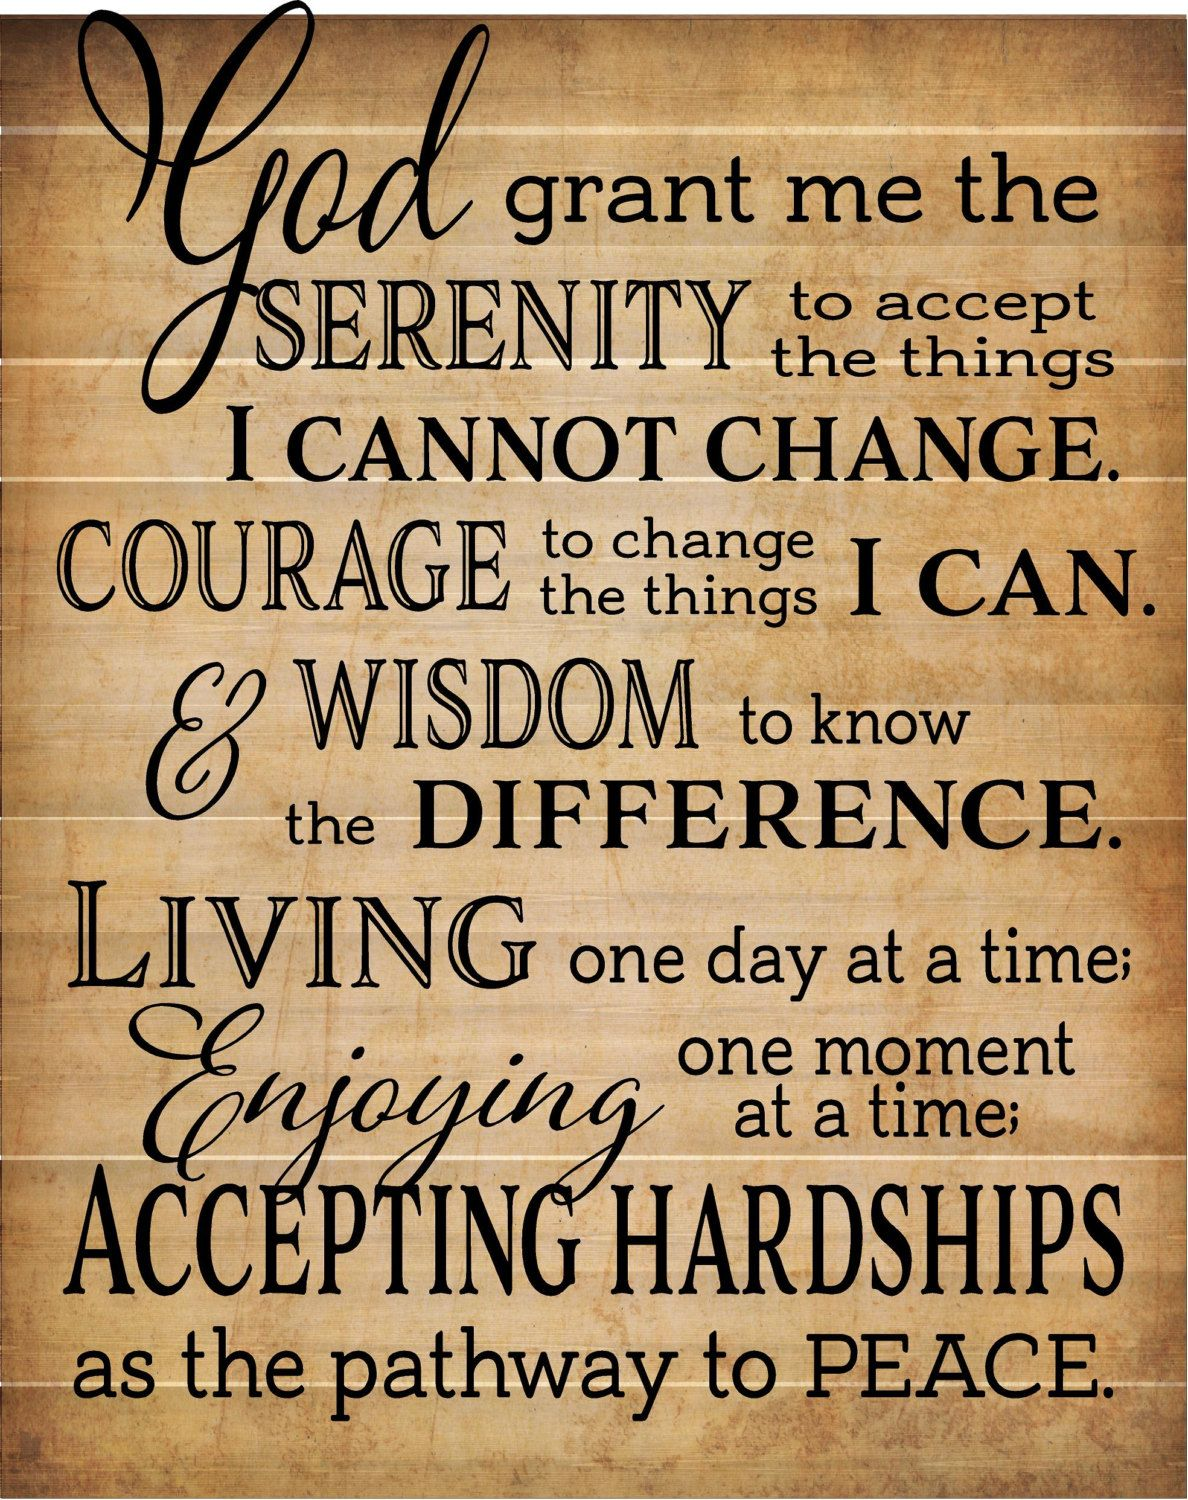 Serenity Prayer Wall Decor as i listened in this morning i received a reminder to focus my